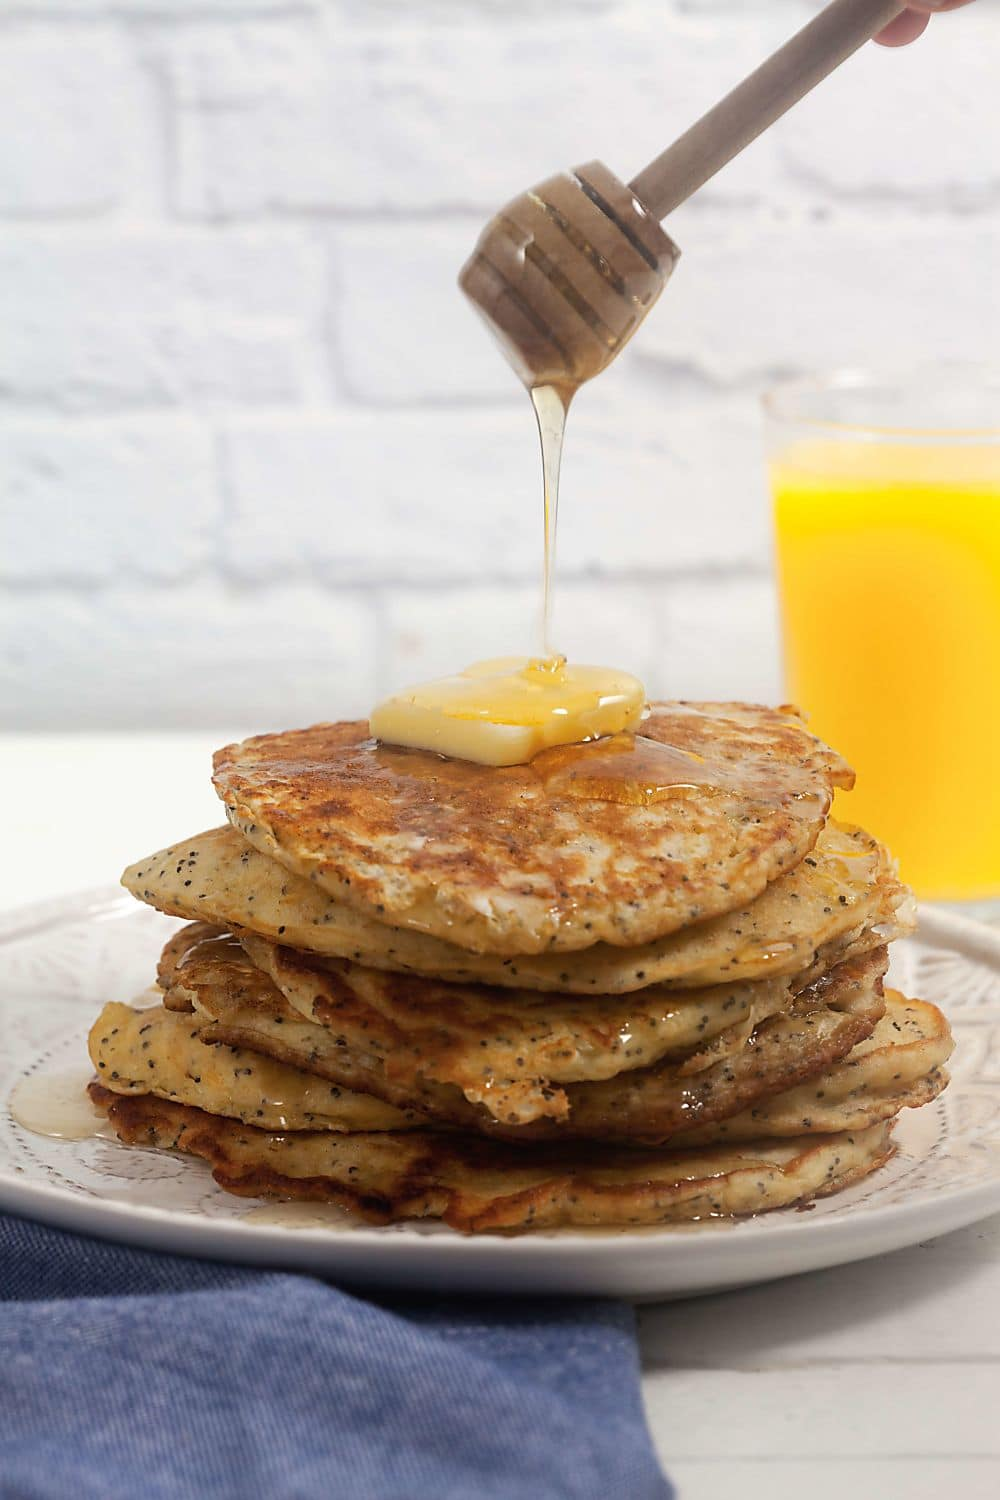 Lemon Poppyseed Oatmeal Pancakes with Oney